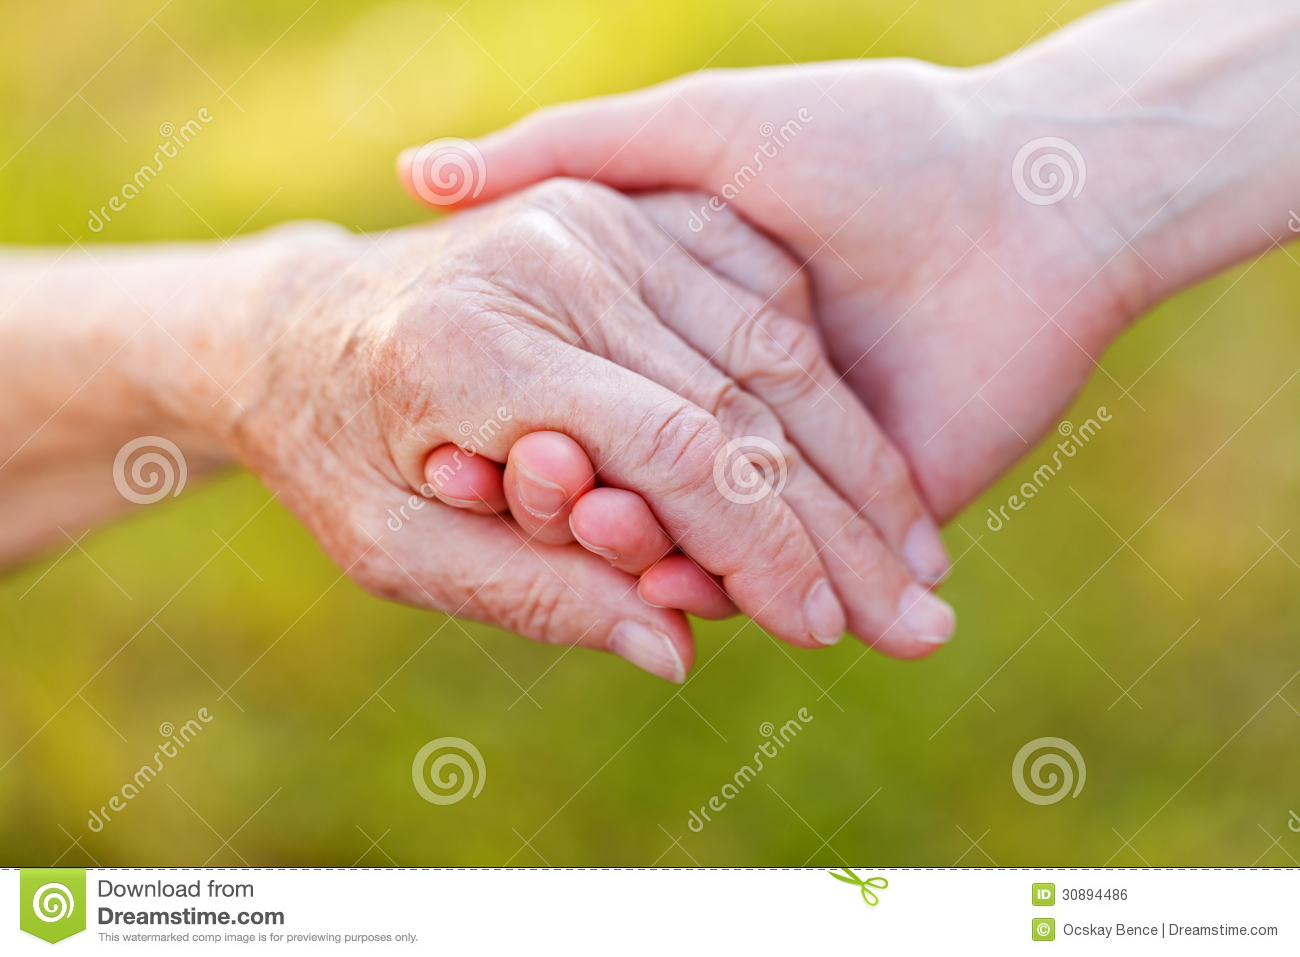 Helping Hands Royalty Free Stock Image   Image  30894486